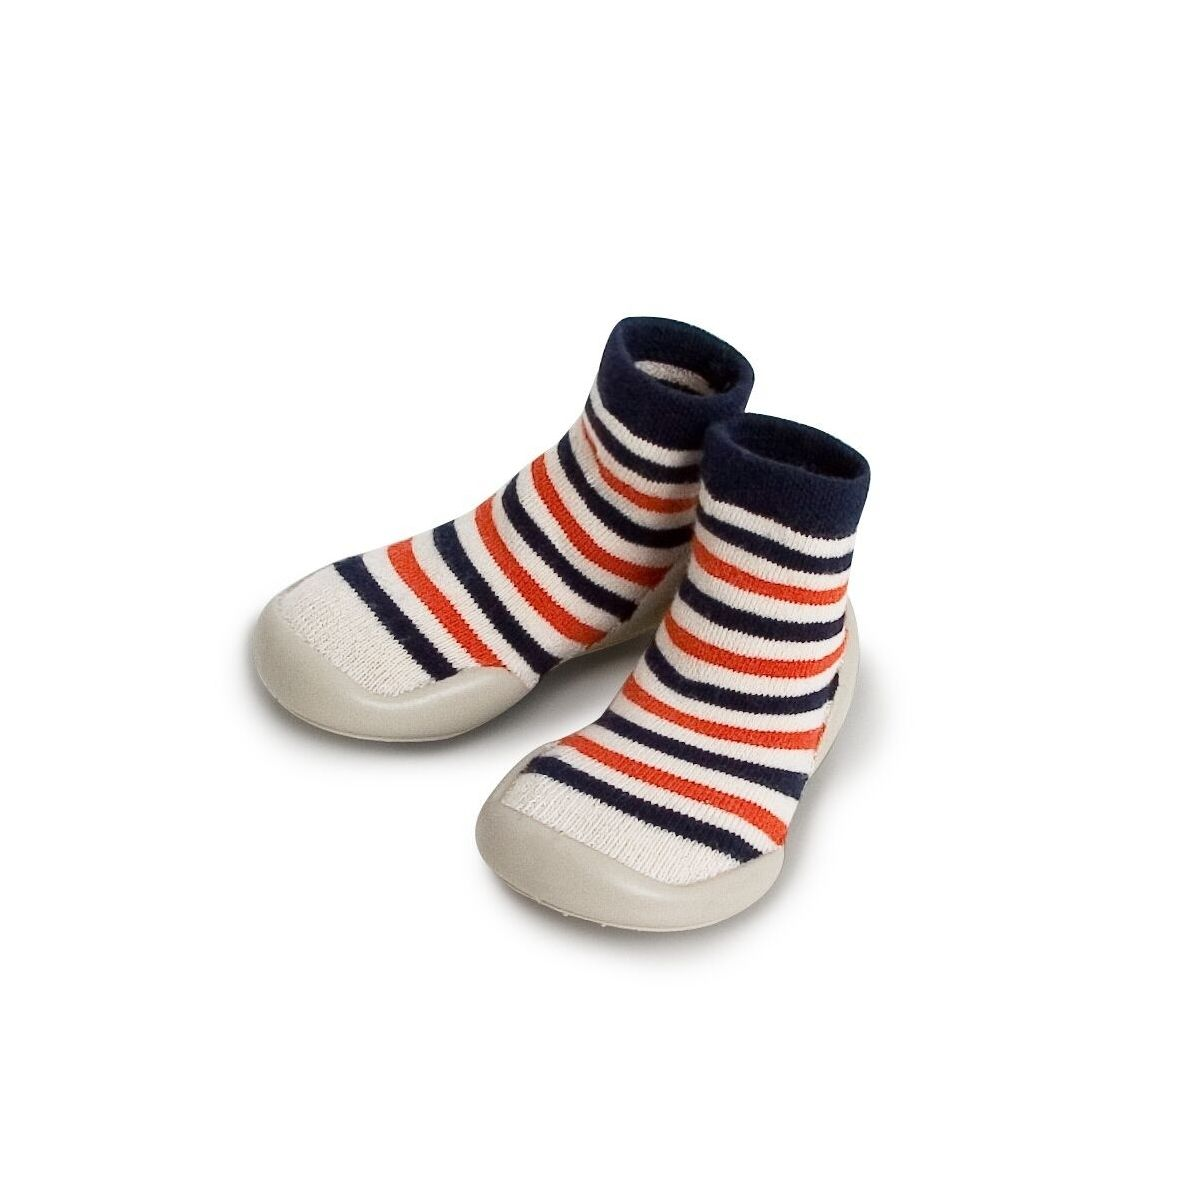 Slipper Socks Marine Stripes colorful stripes